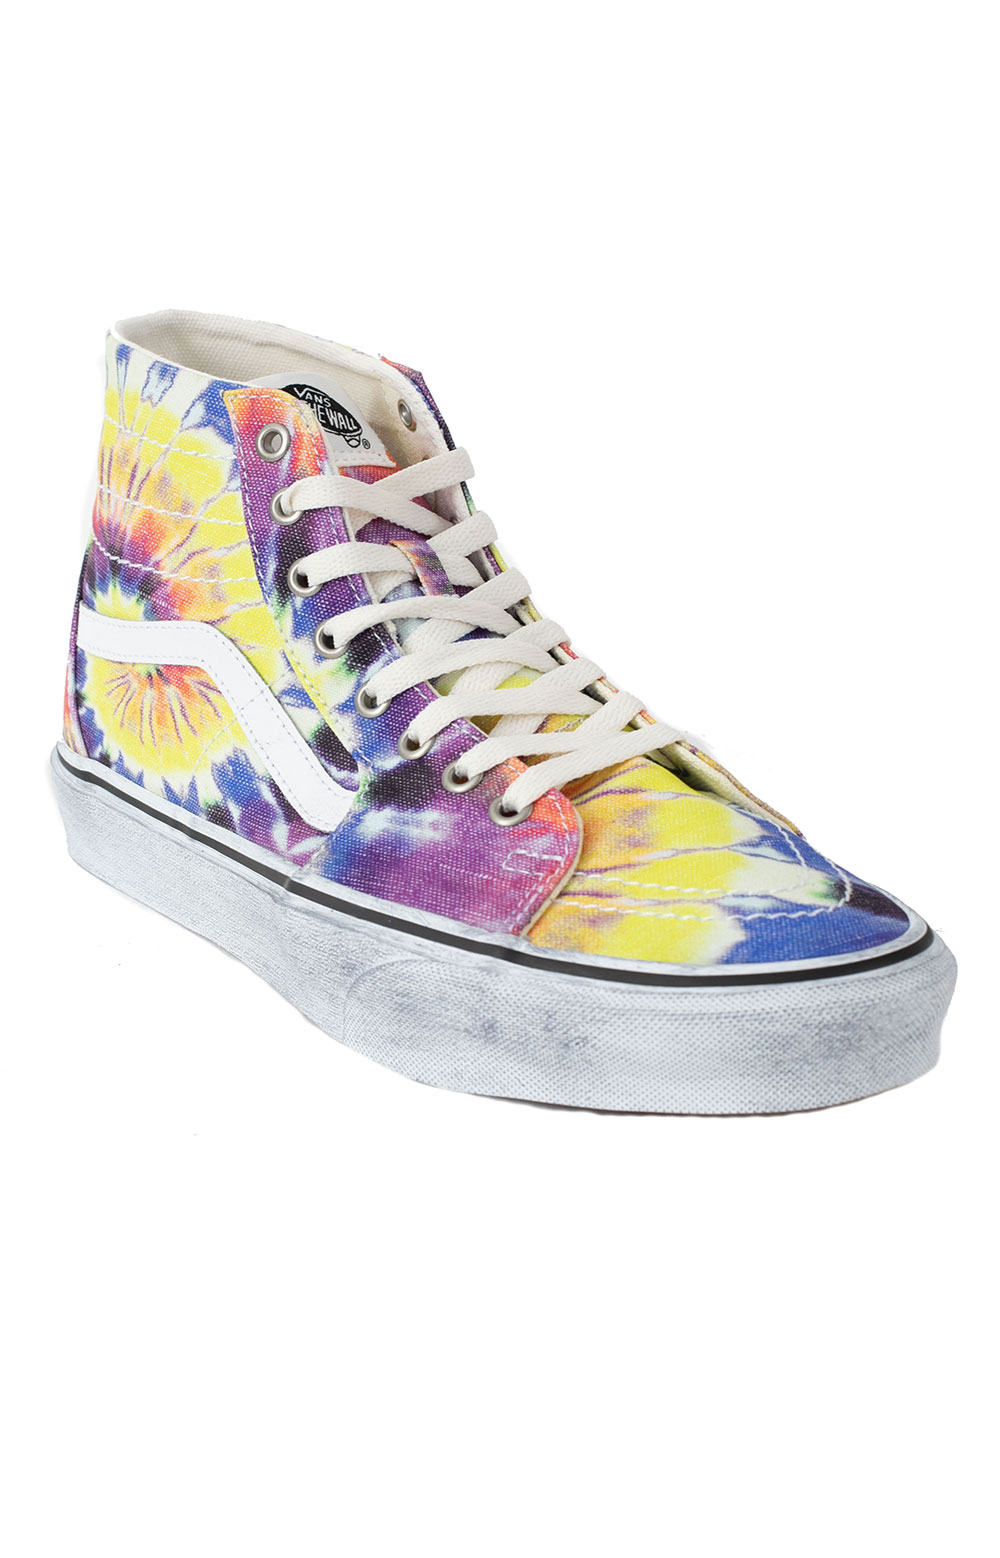 (U1619X) Washed Sk8-Hi Tapered Shoes - Tie-Dye/True White  4